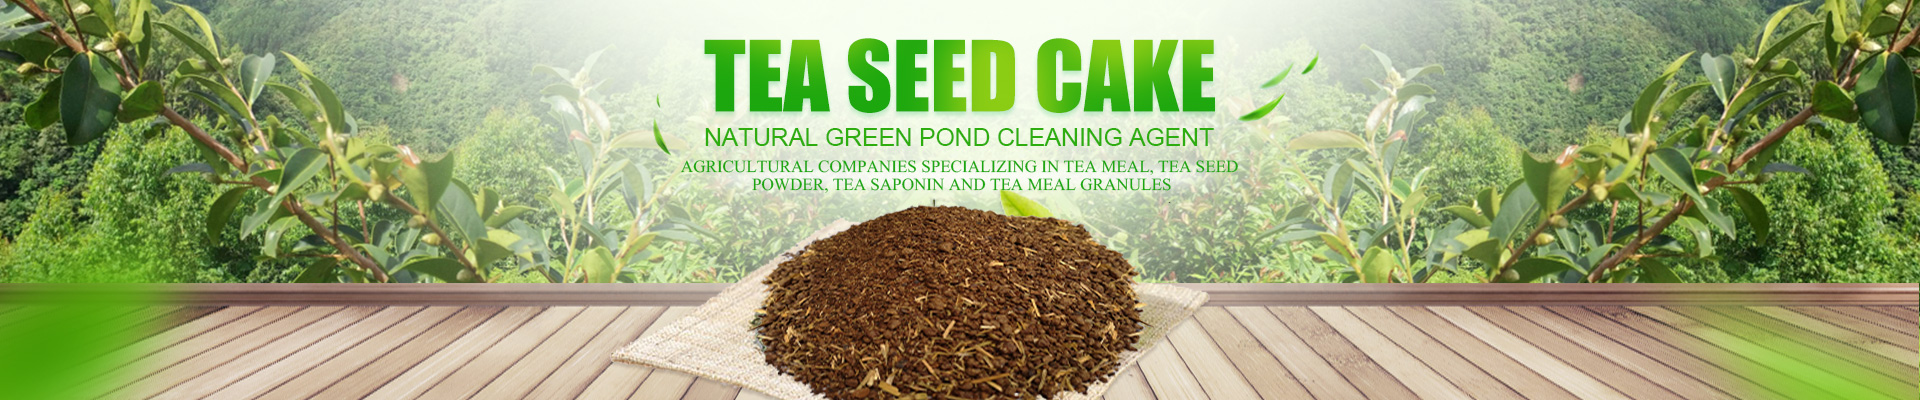 Changde fuhua agricultural development co. LTD_Changde tea meal|tea seed powder